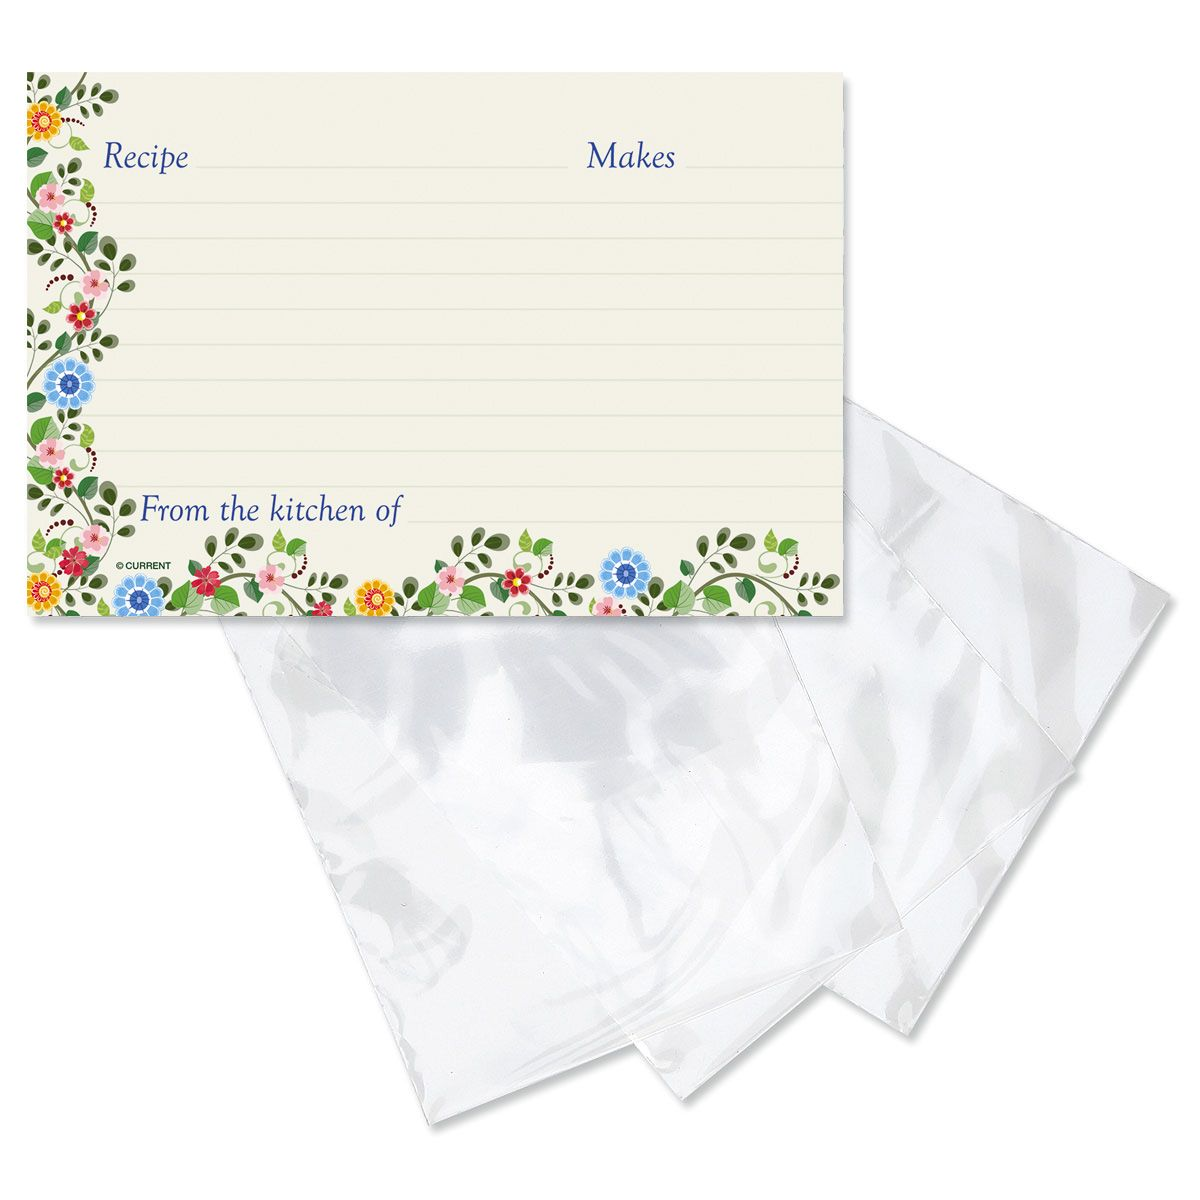 Spring Floral Recipe Card and  Saver Sleeves Gift Set